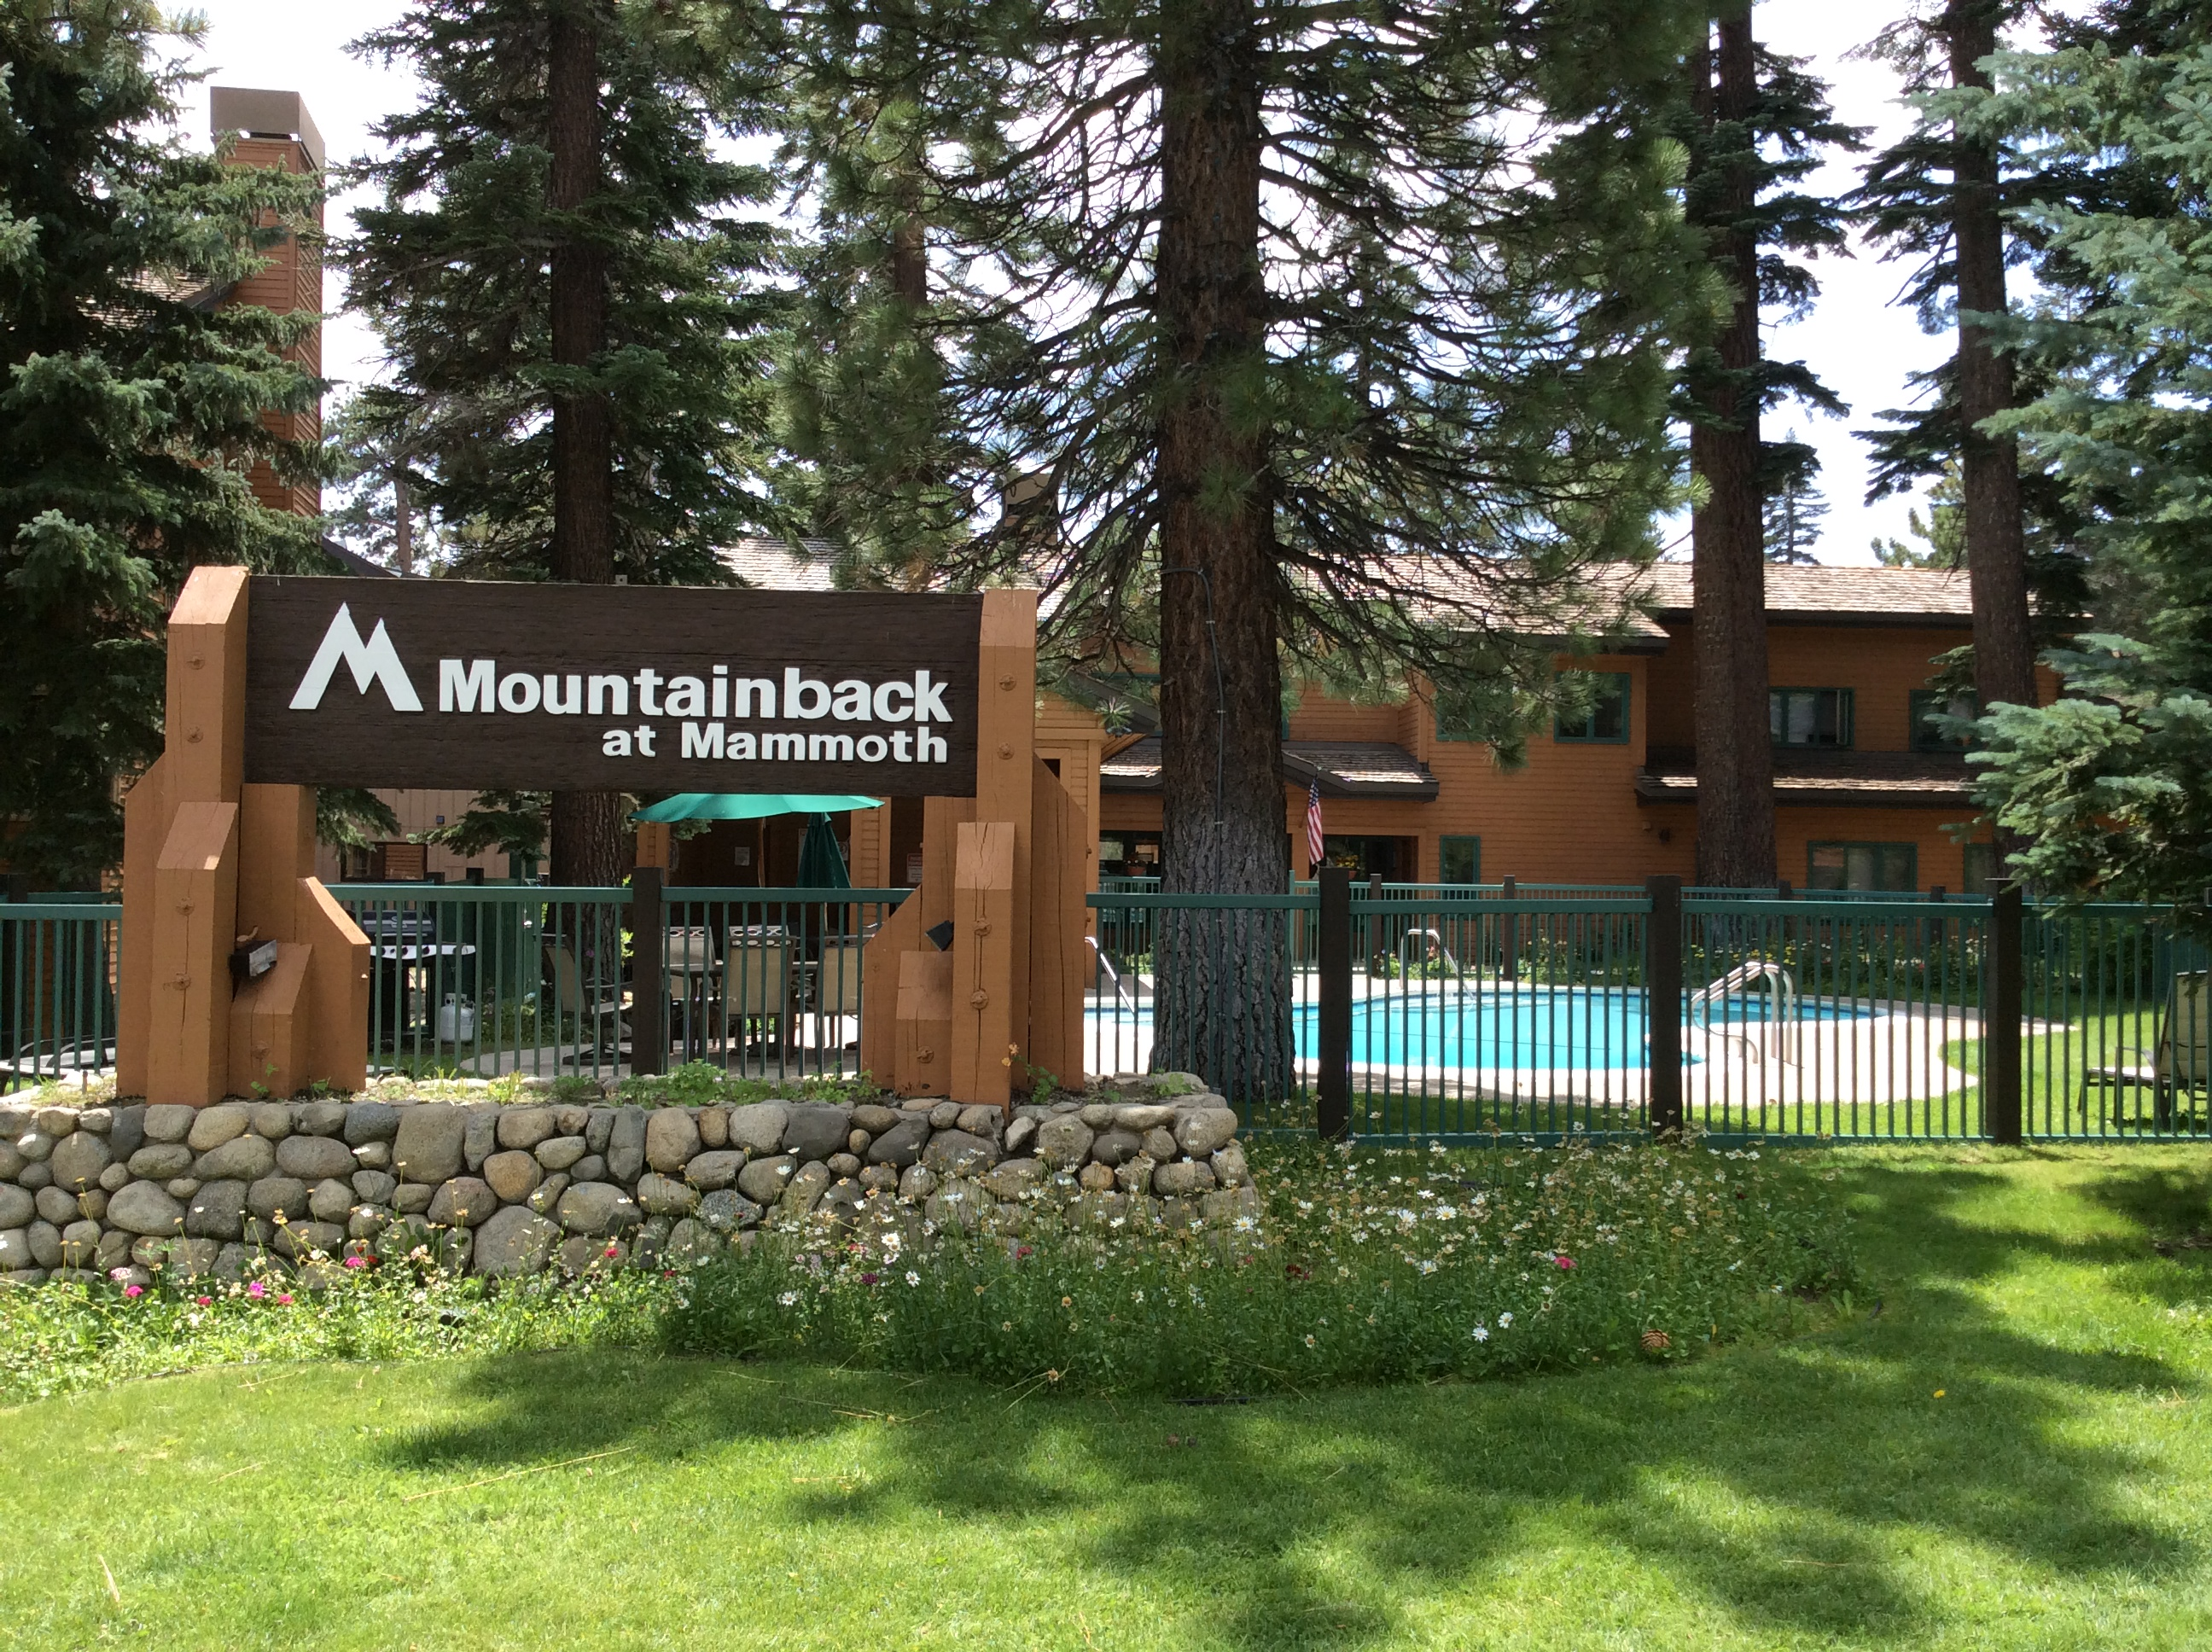 Mountainback Condos Complex Sign and Pool Area